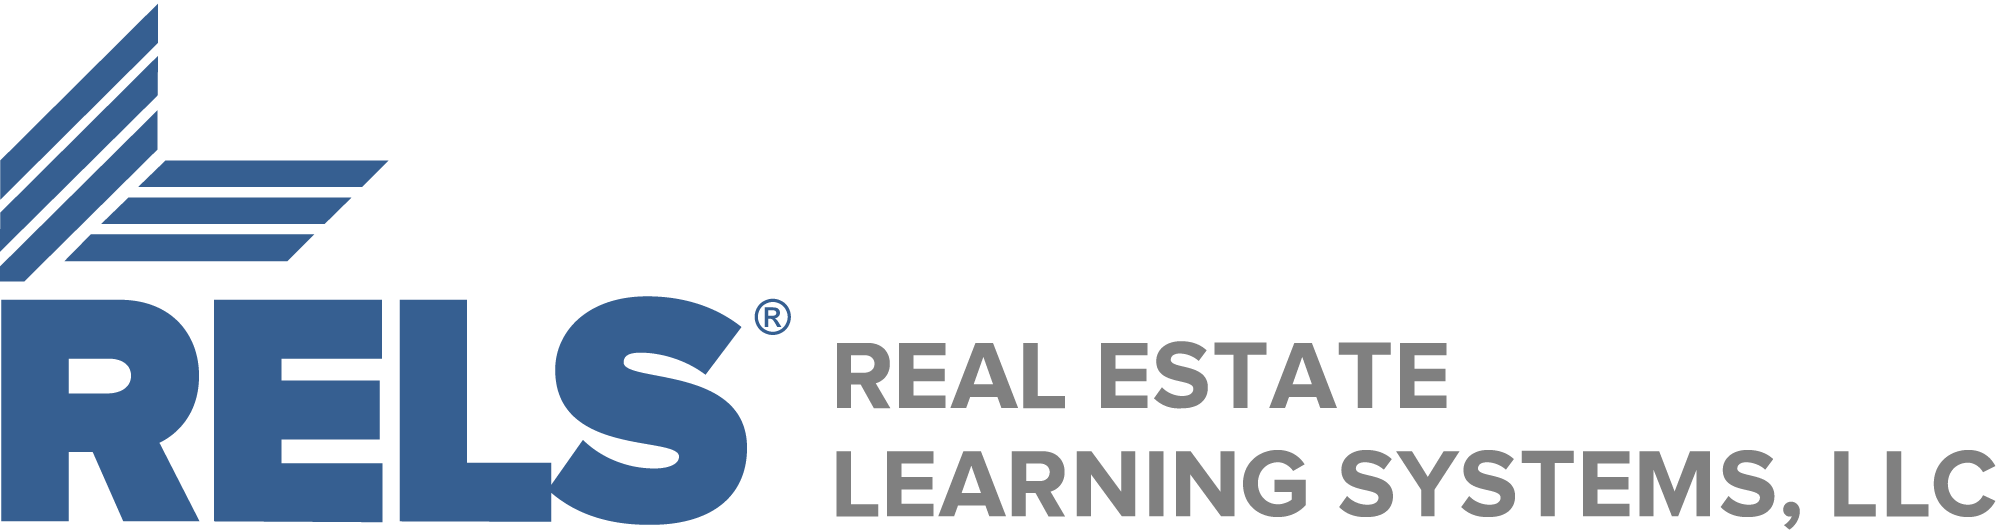 Real Estate Learning Systems, LLC